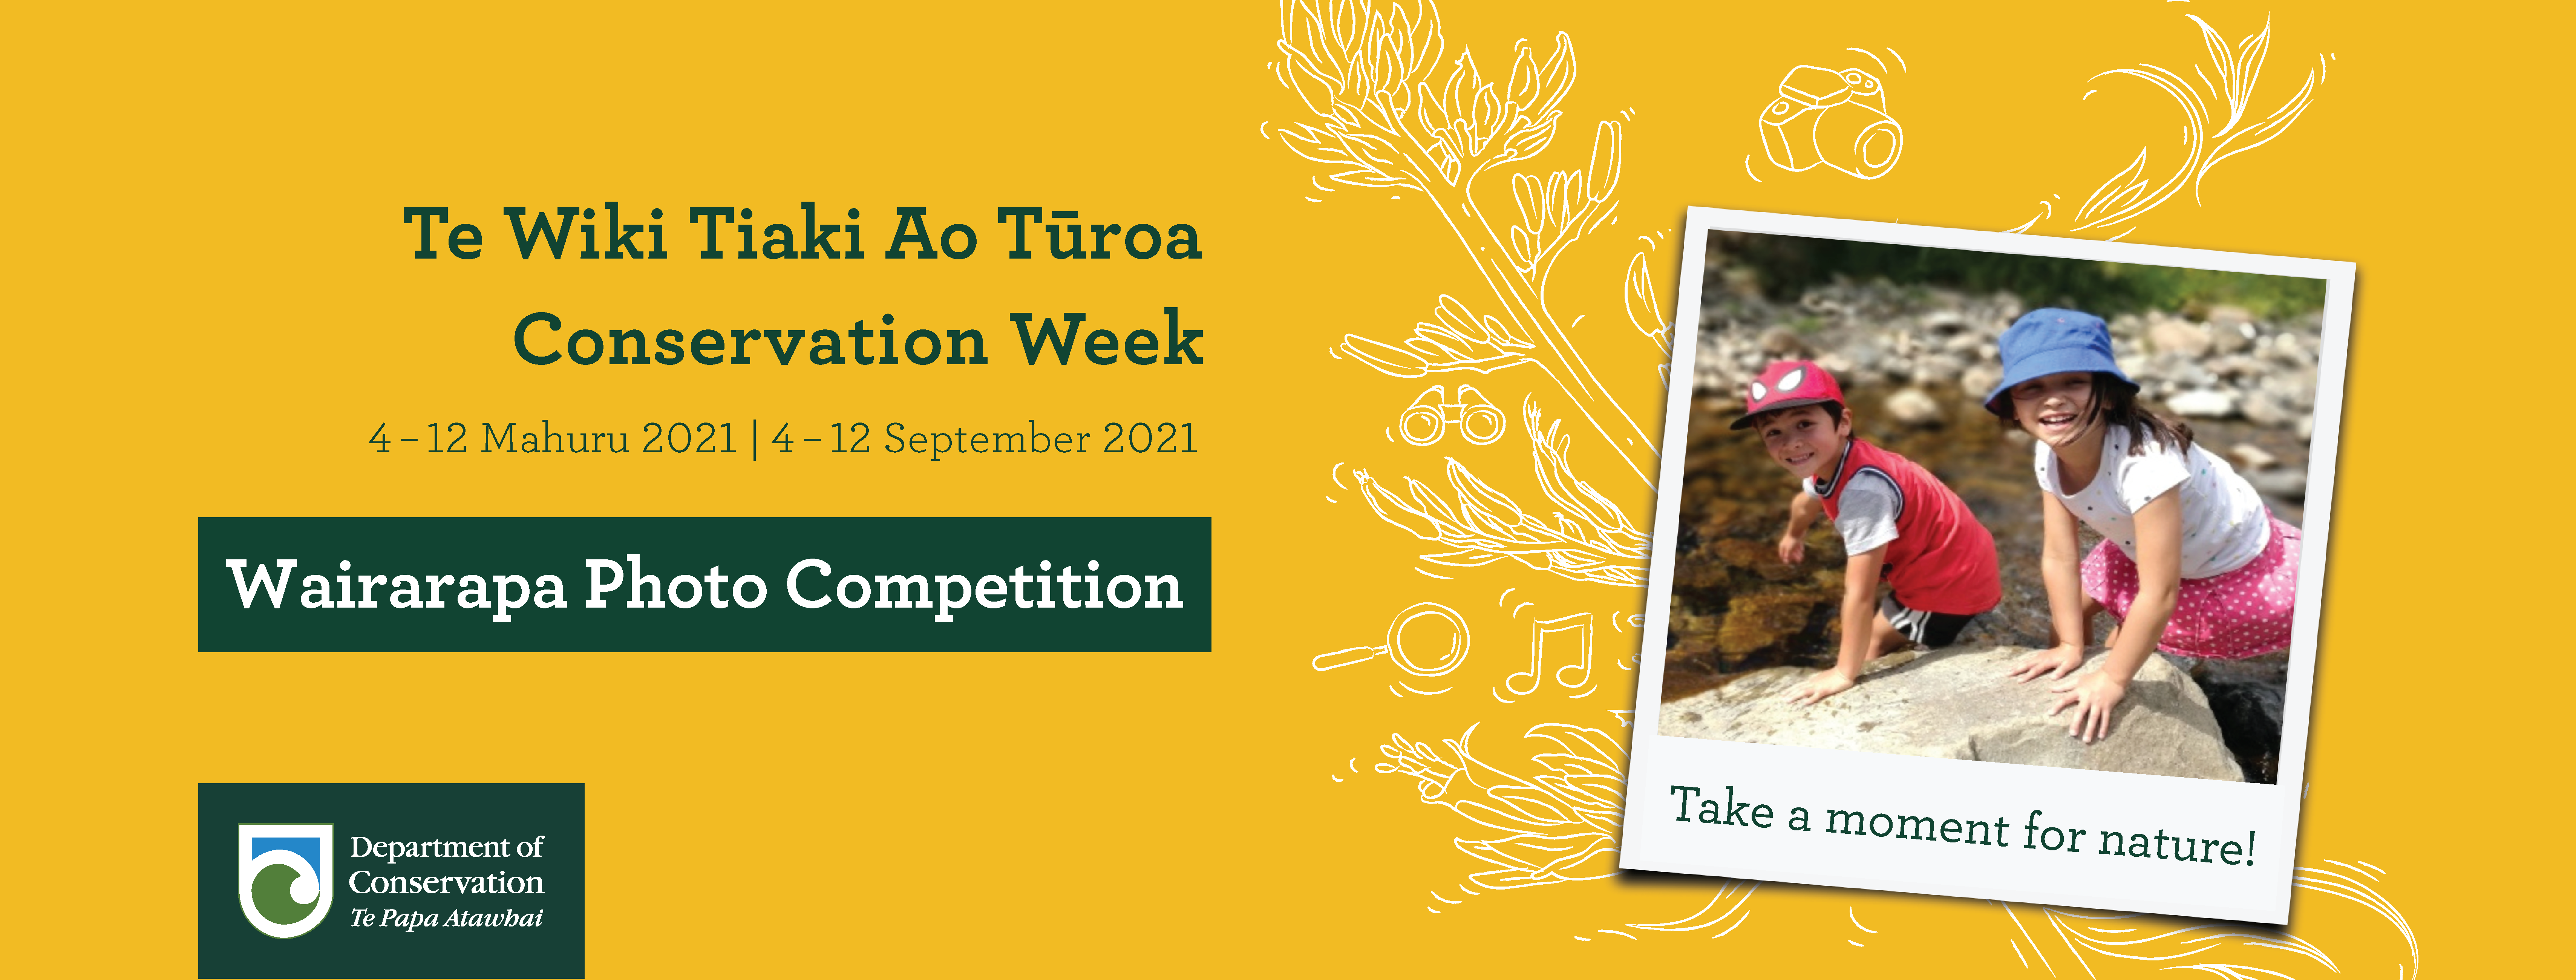 Wairarapa Conservation Week Photo Competition Banner 01